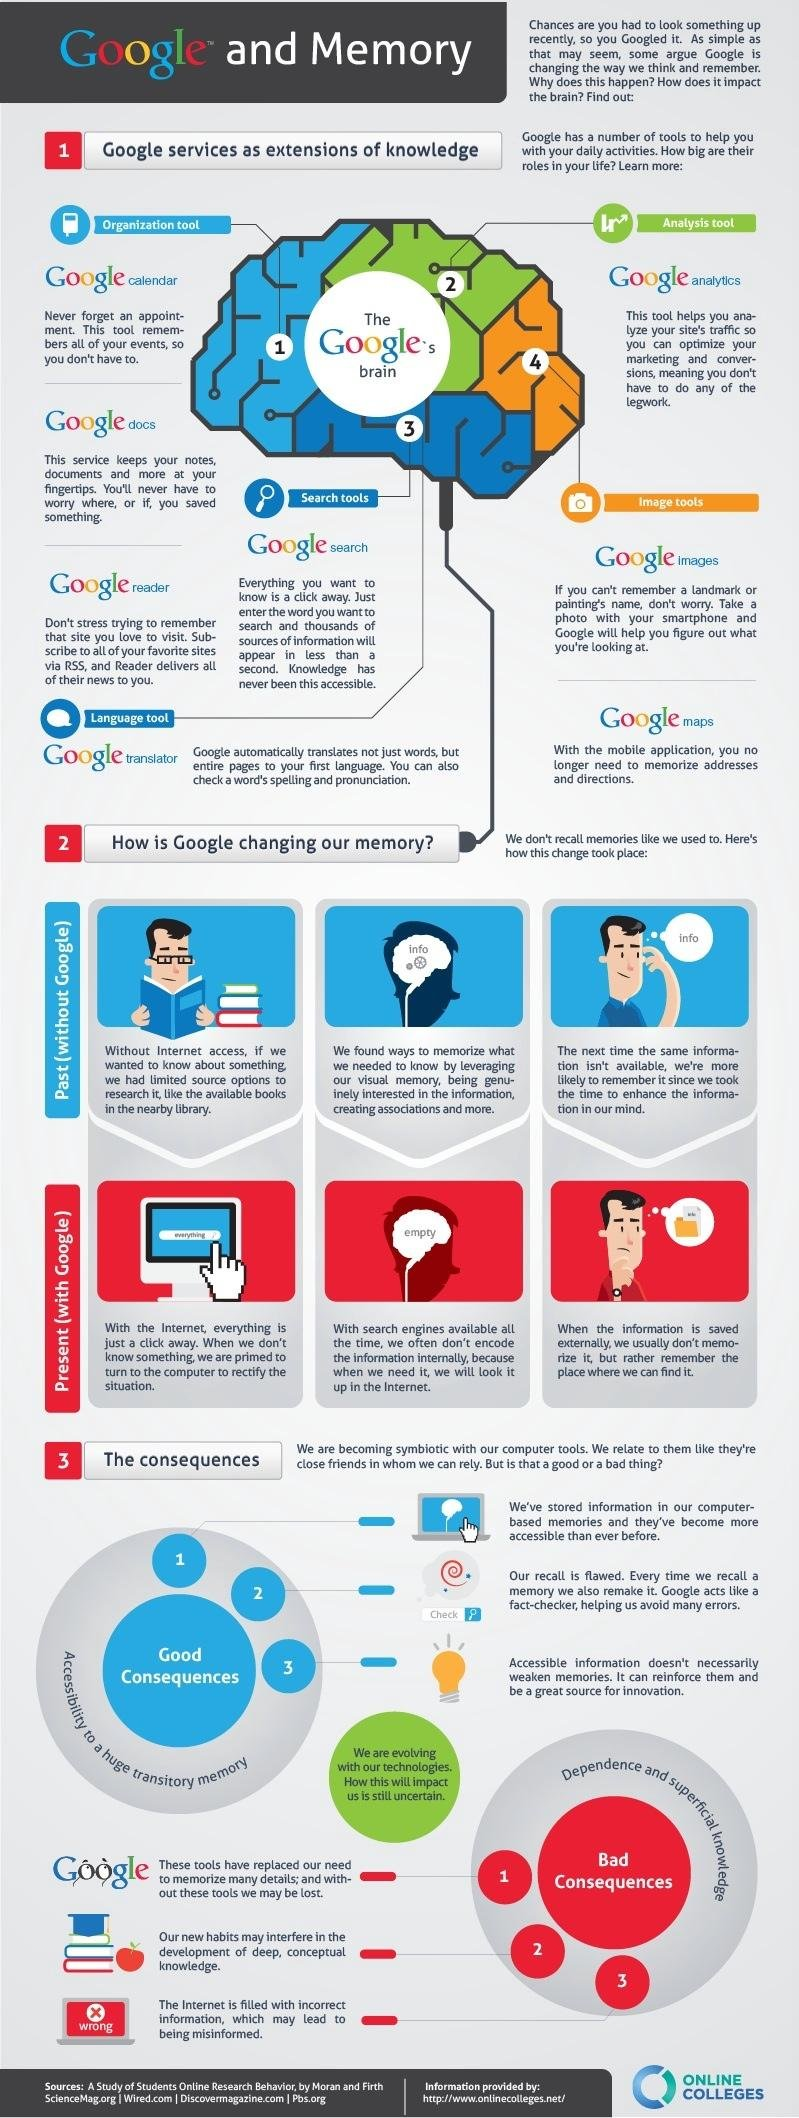 Google and memory: The Google's brain and how #Google is changing our memory #infographic